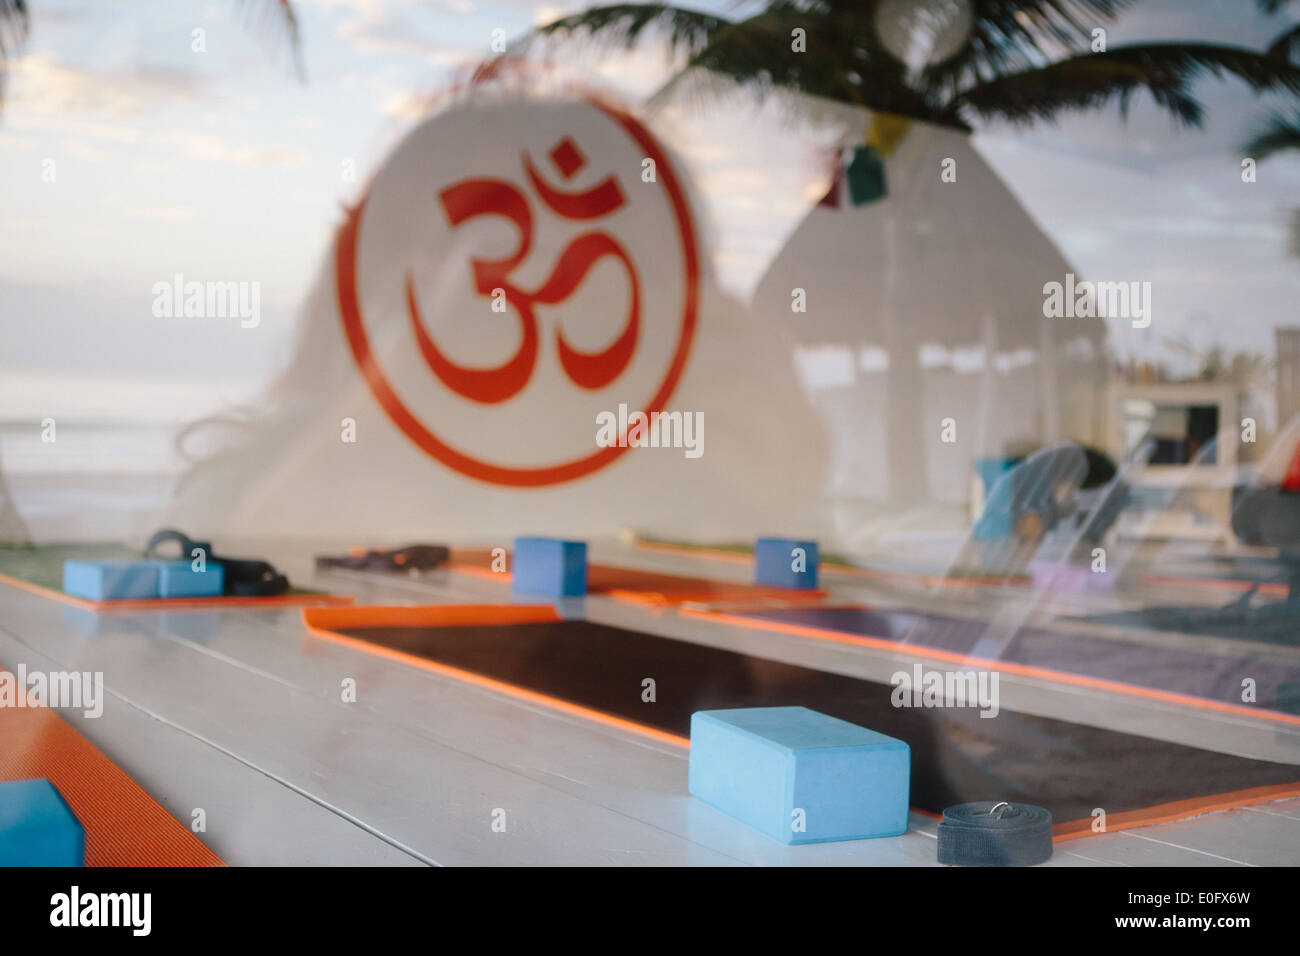 View of empty yoga studio with yoga mats and yoga blocks with Om symbol painted in orange on the wall with palm tree reflections - Stock Image